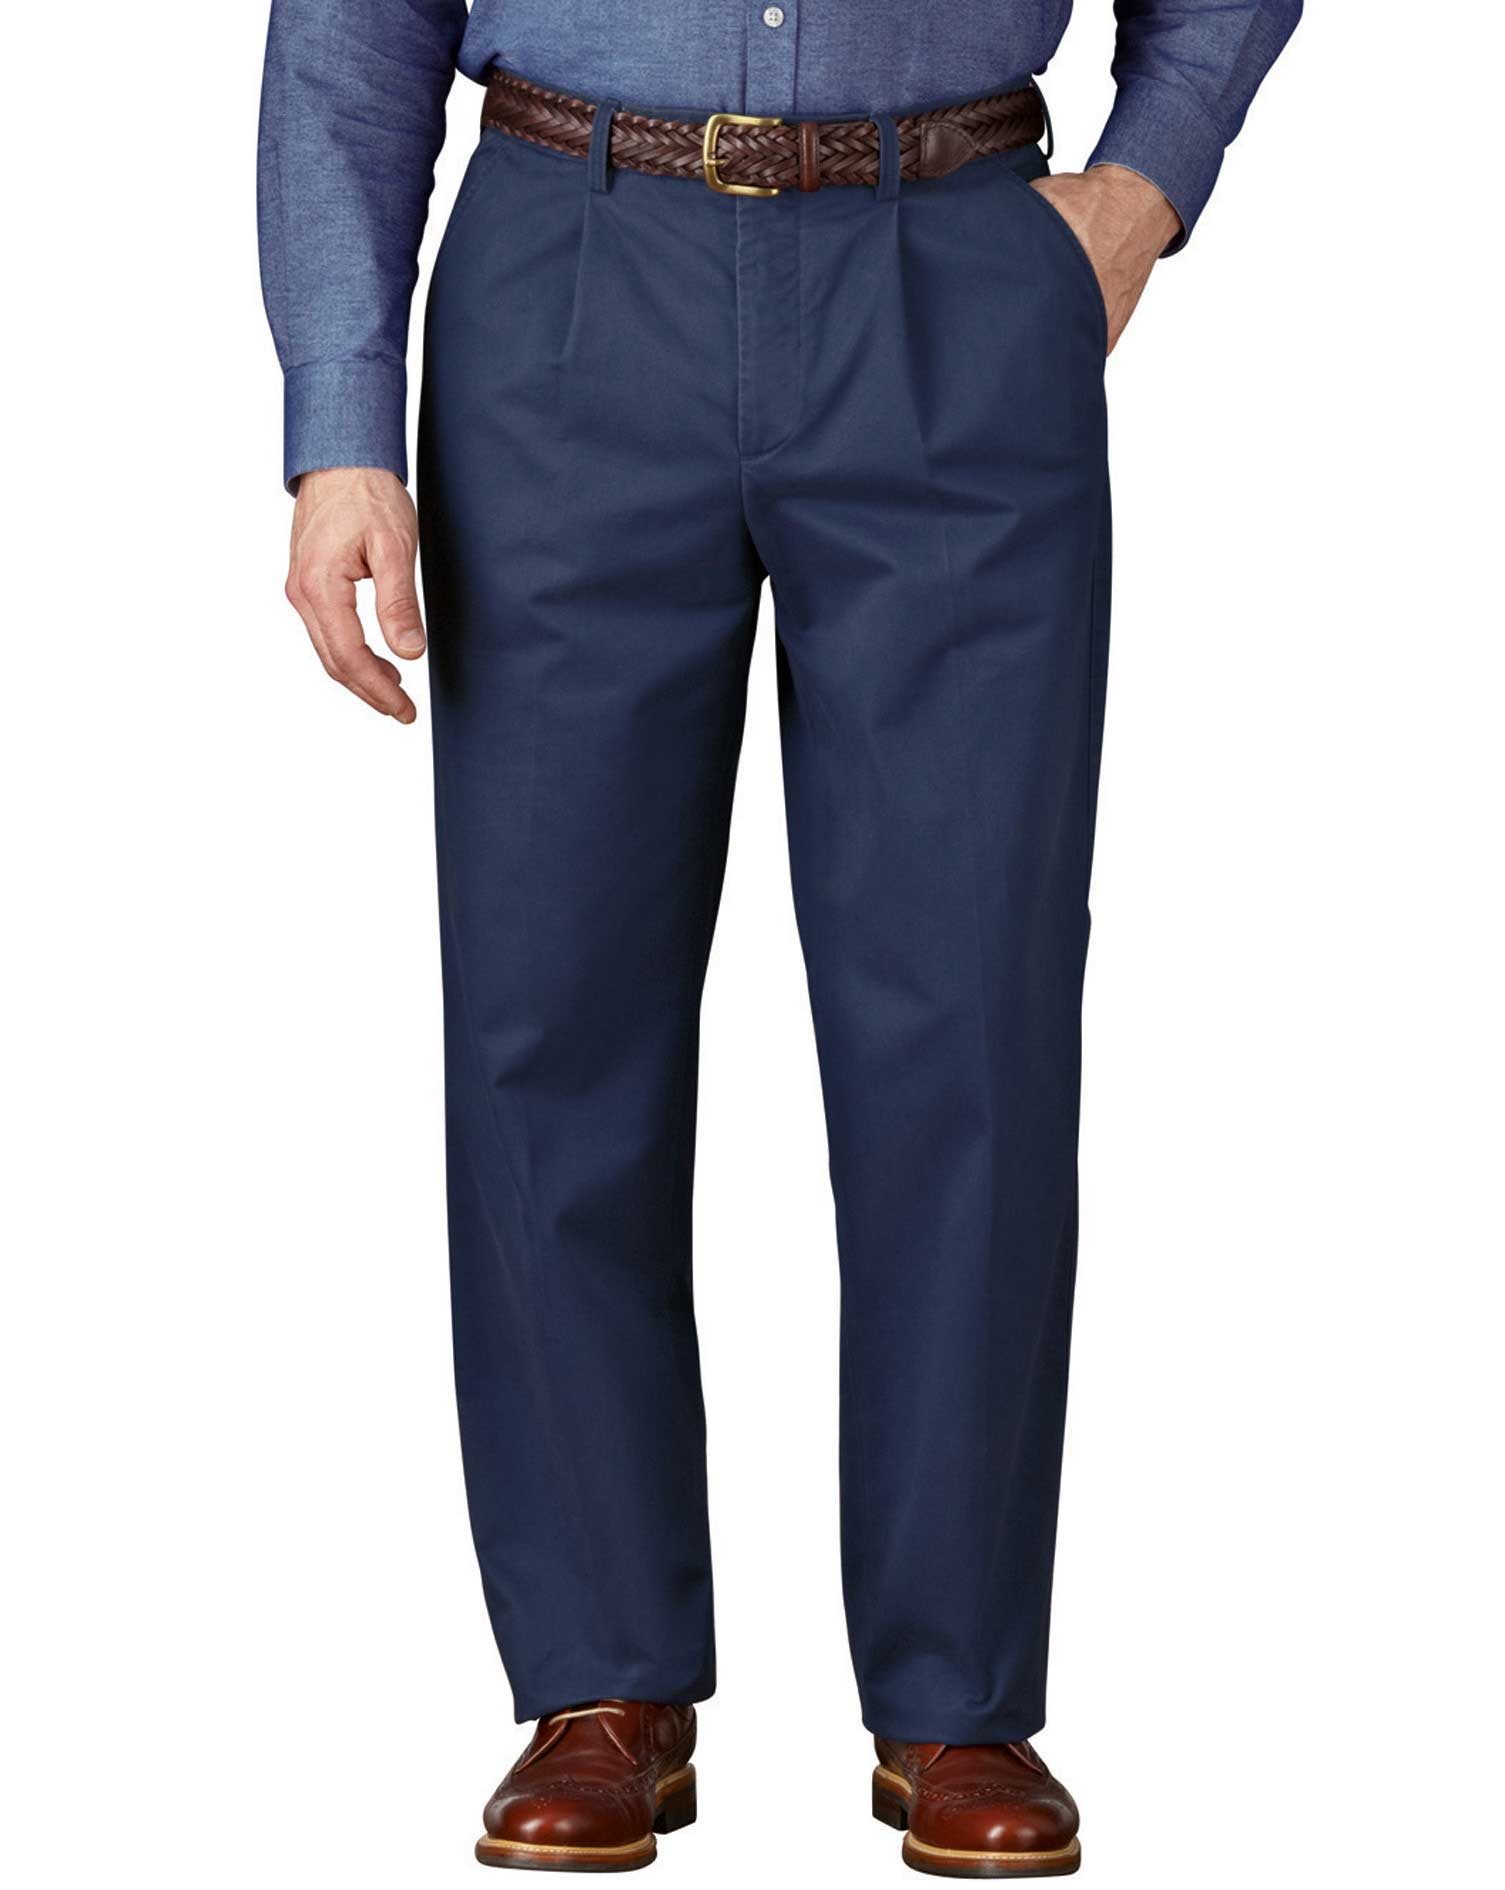 Blue Classic Fit Single Pleat Weekend Cotton Chino Trousers Size W38 L34 by Charles Tyrwhitt